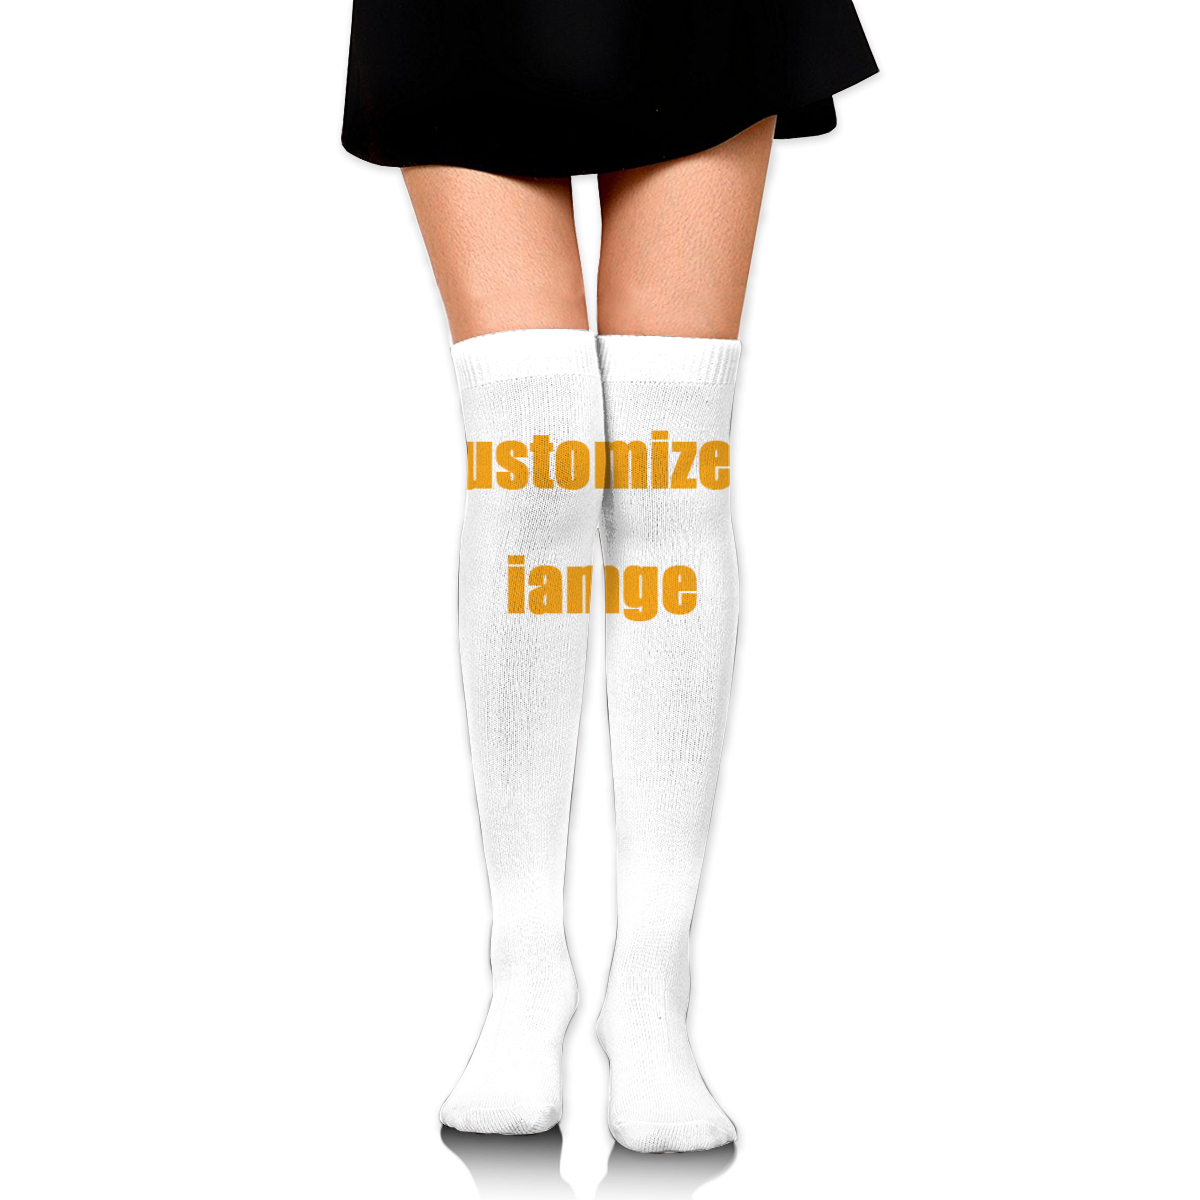 NOISYDESIGNS Customized Printing Women Socks Stockings Warm Thigh High Over The Knee Socks Long Stockings Sexy Stockings Custom